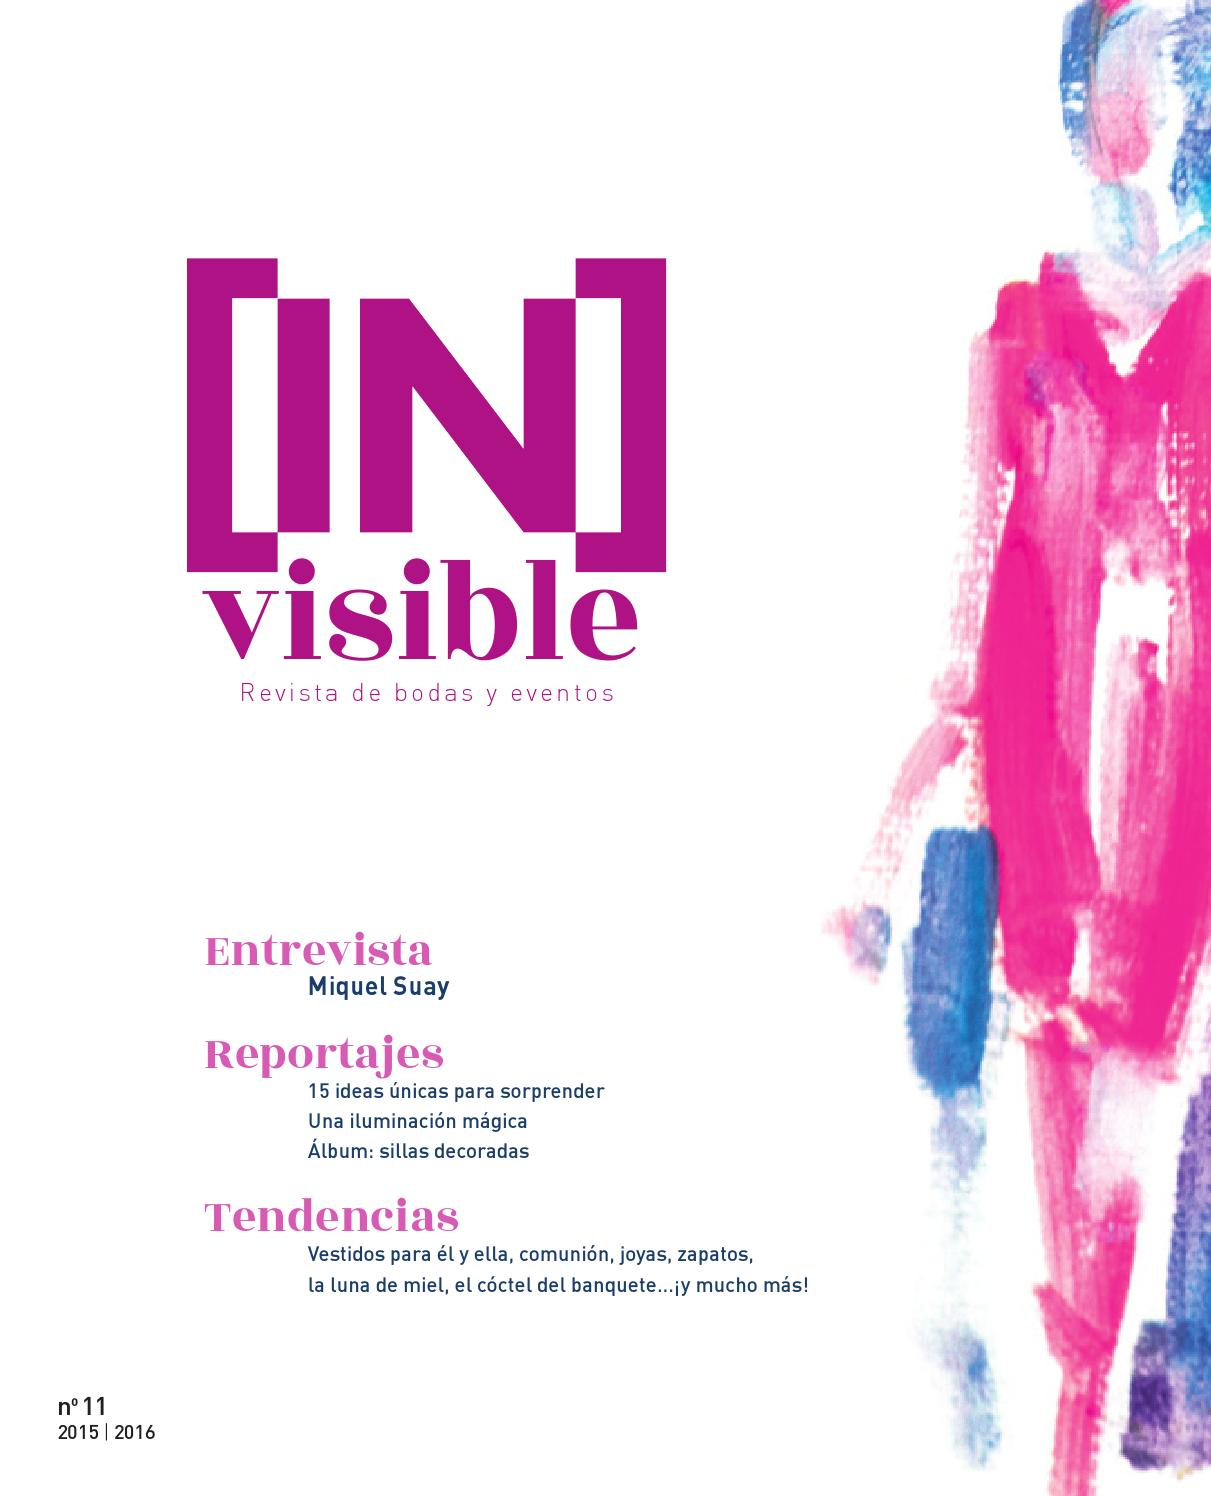 Invisible Bodas y Eventos 2015/2016 by Saforguia MediaServiocio - issuu